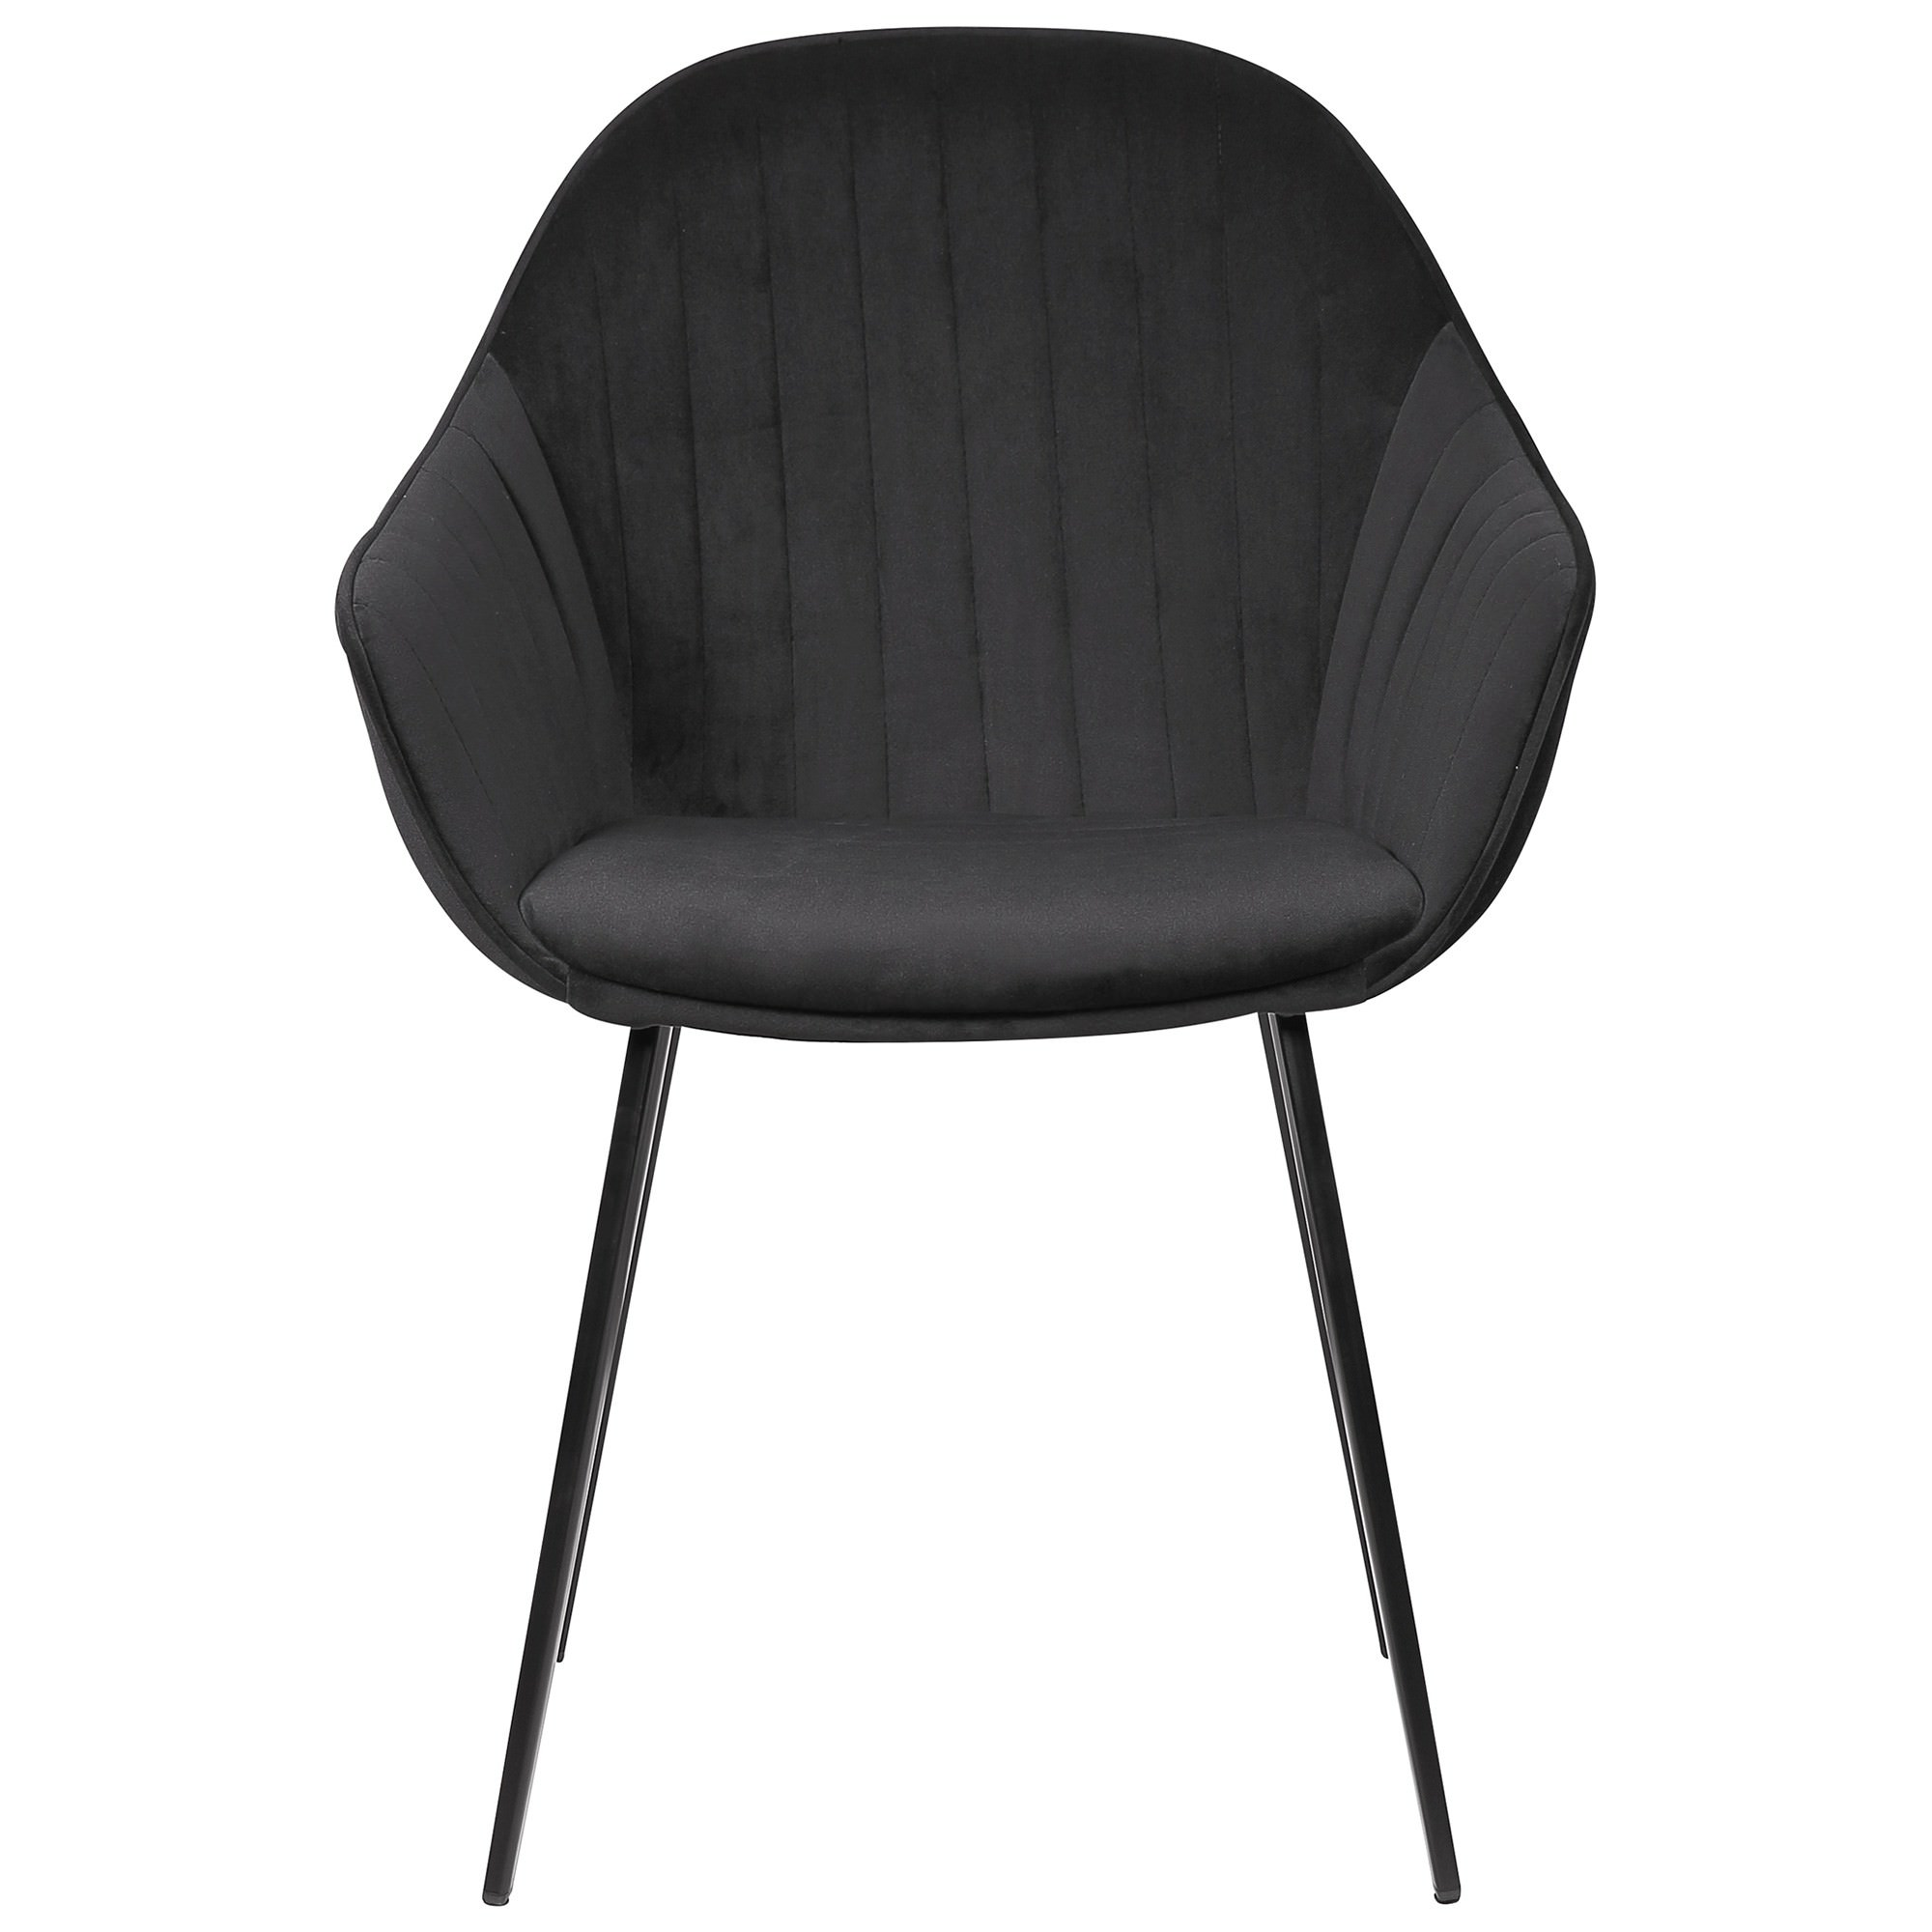 Eford Commercial Grade Velvet Fabric Dining Chair, Black